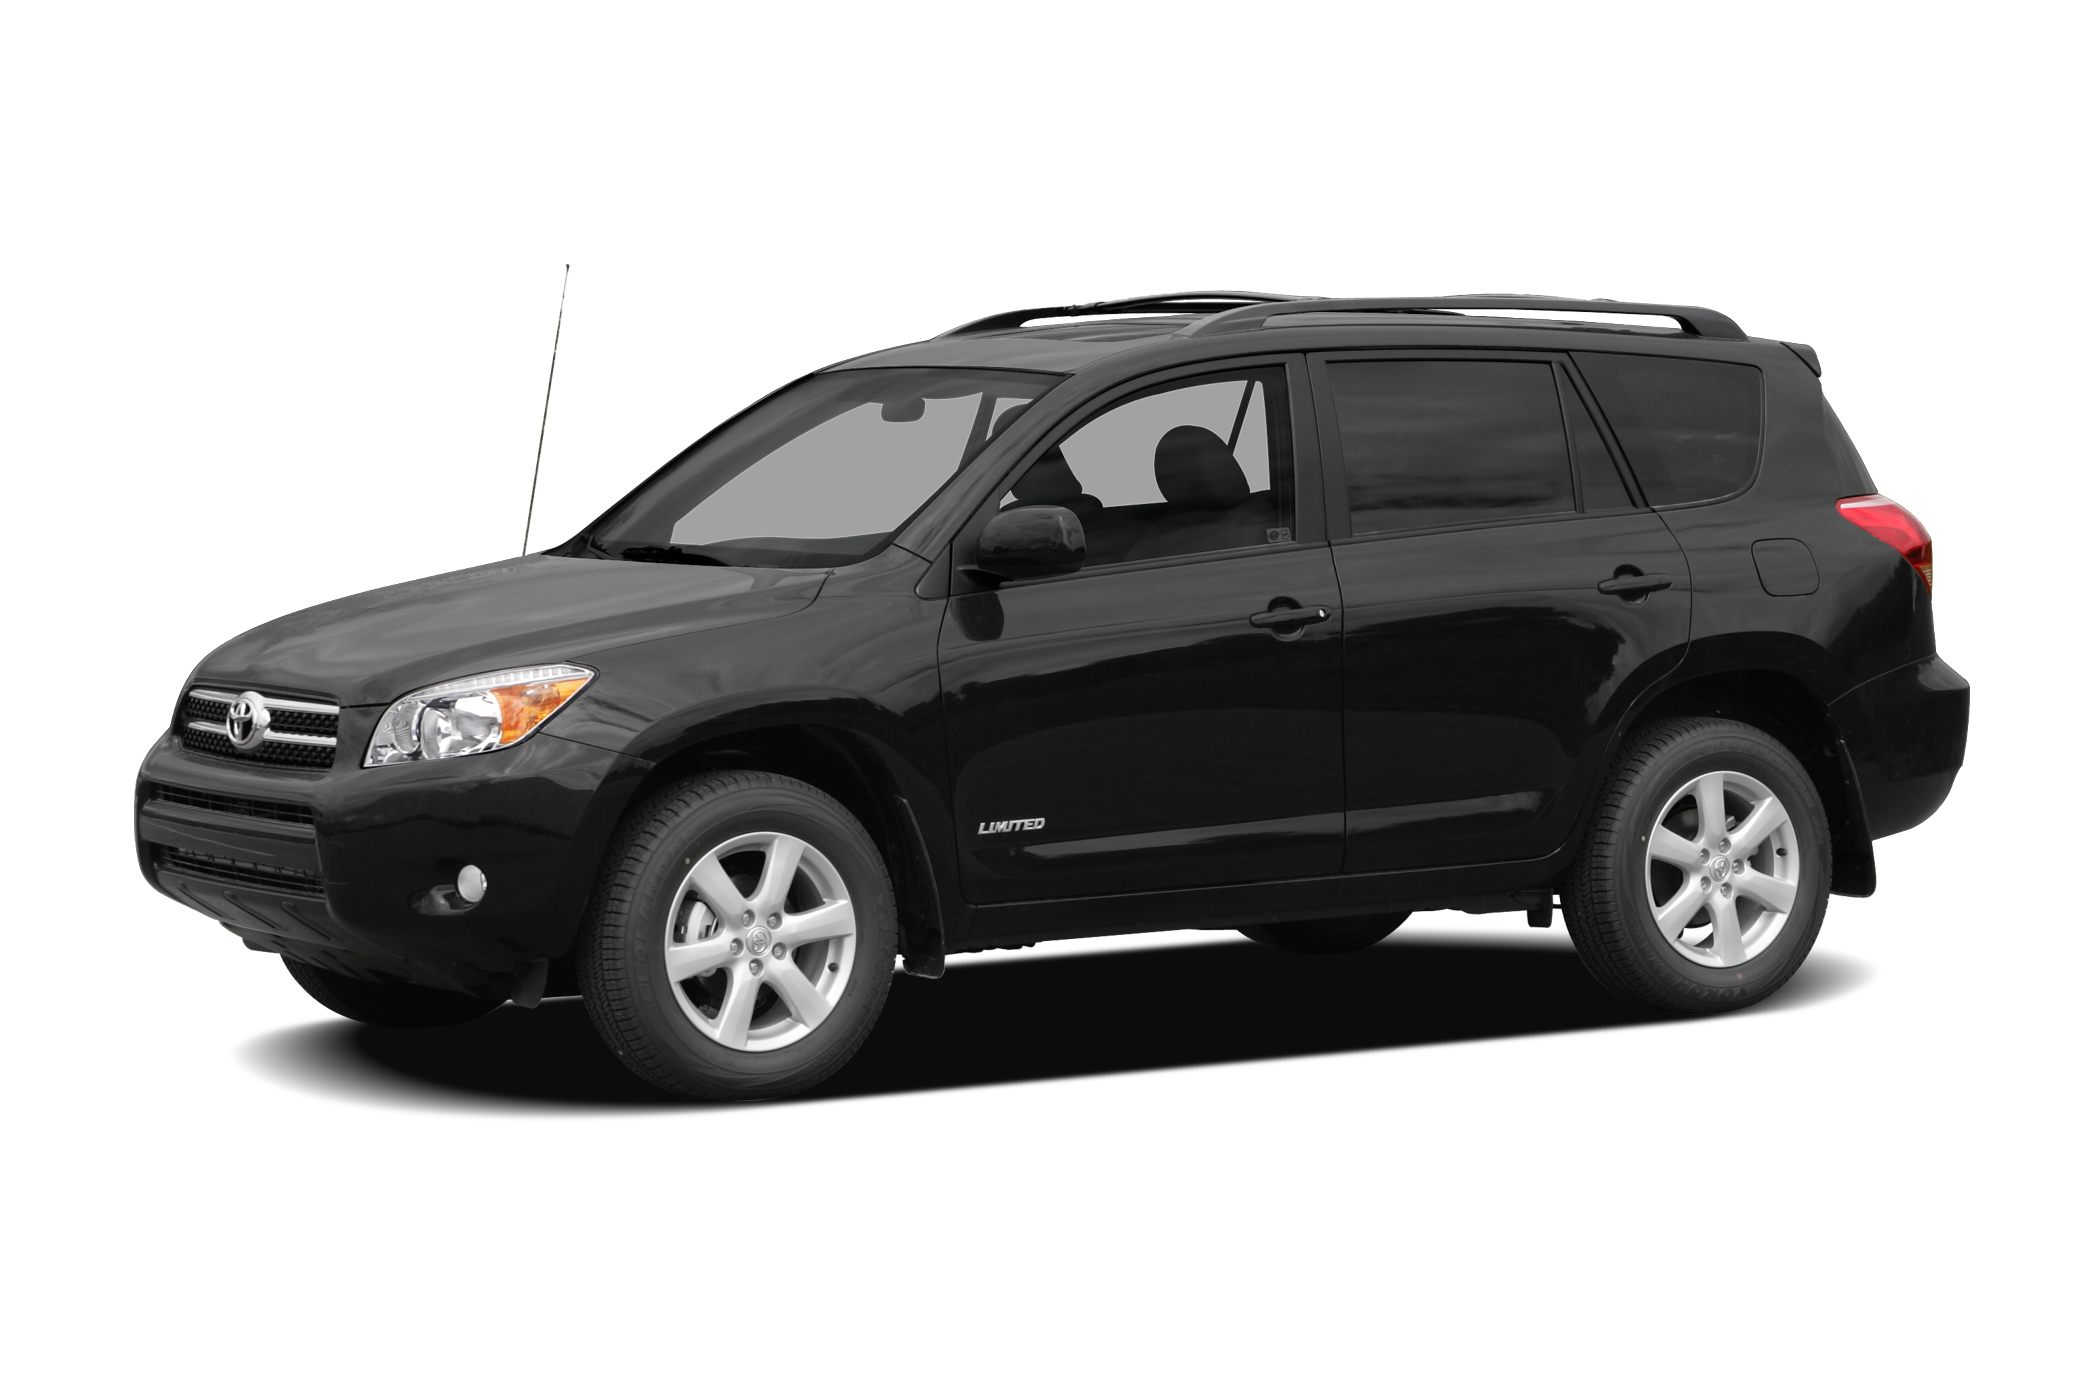 2008 Toyota RAV4 Limited This 2008 Toyota RAV4 4dr 4WD 4dr 4-cyl 4-Speed Automatic Ltd features a